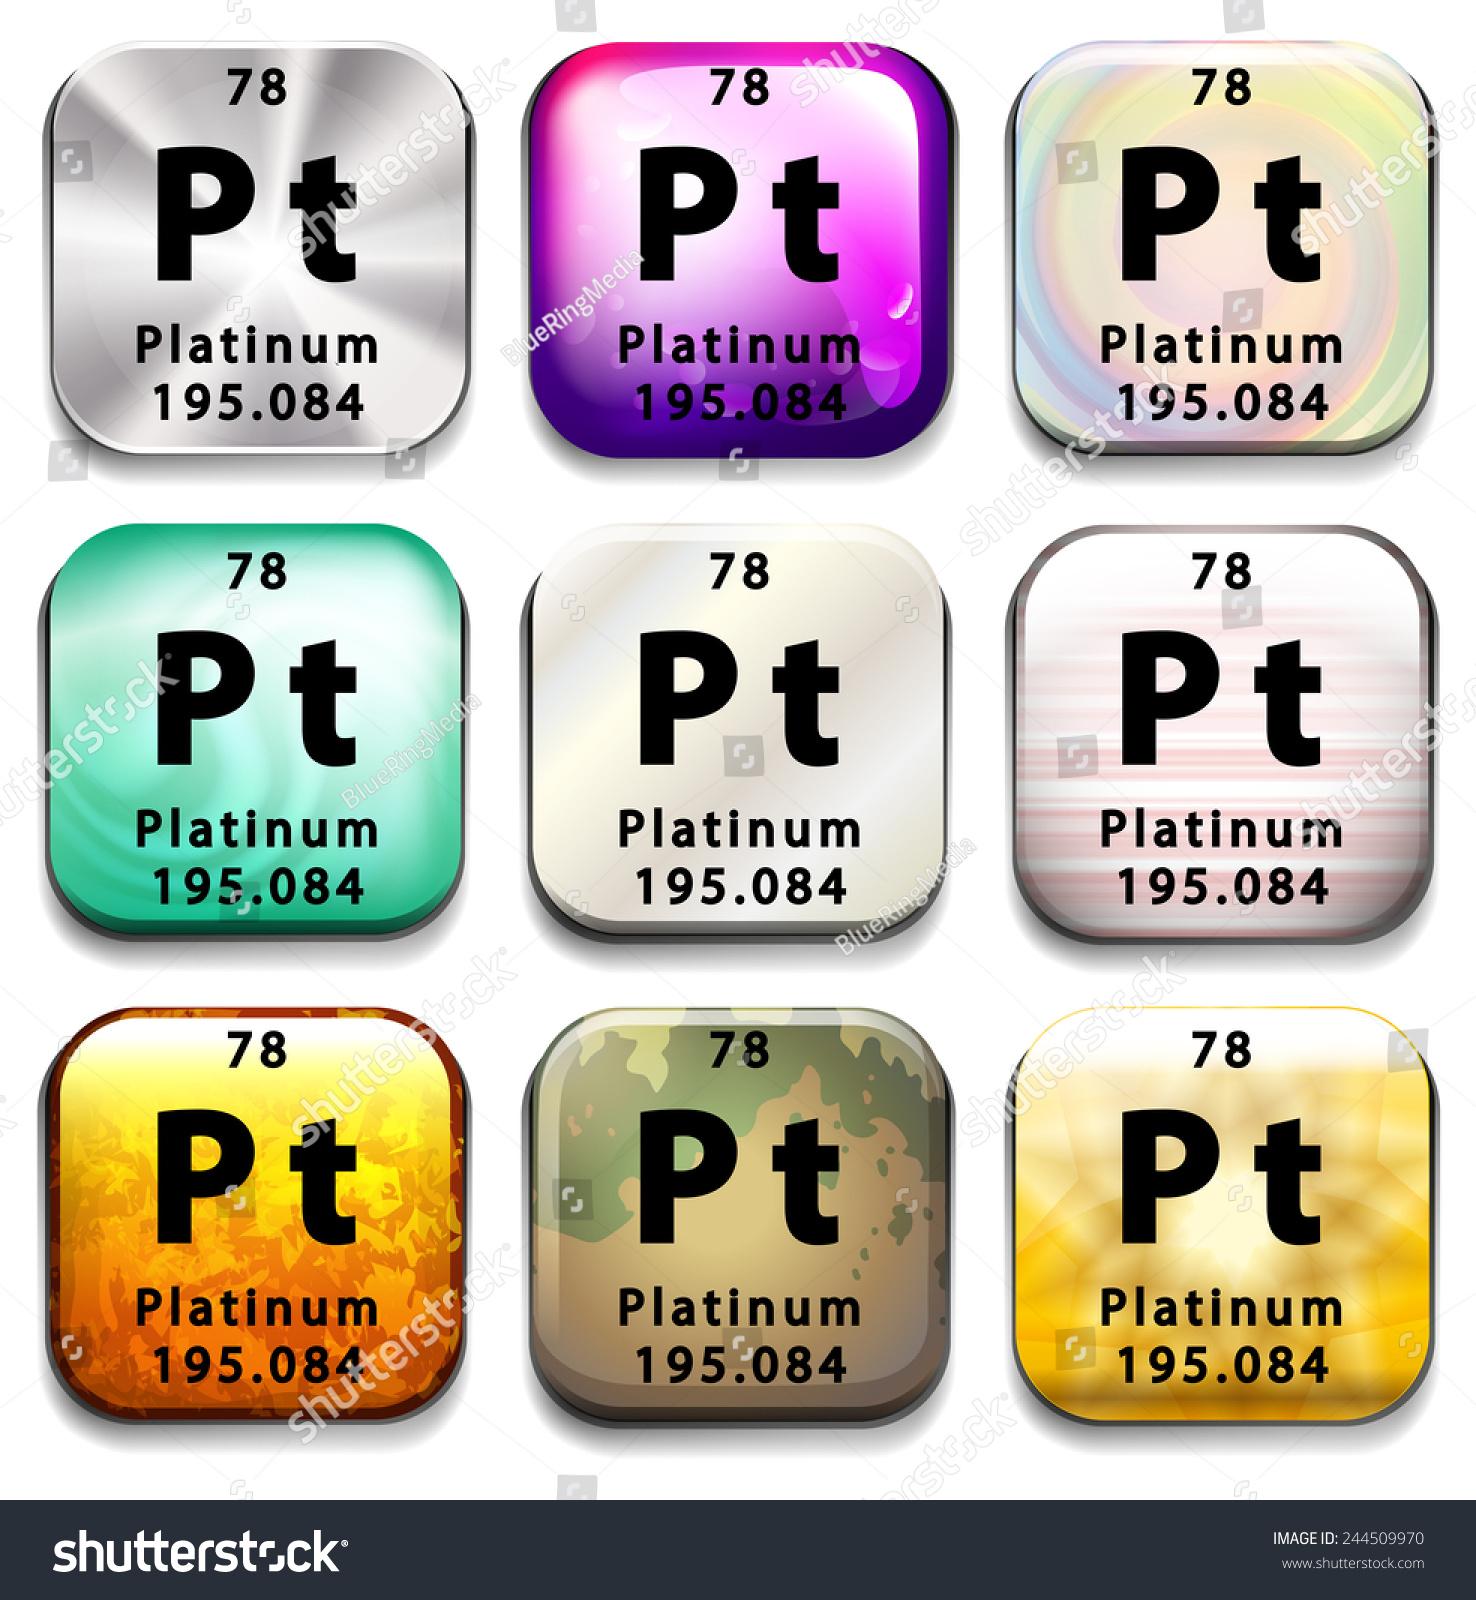 Asap periodic table gallery periodic table images asap periodic table choice image periodic table images platinum periodic table choice image periodic table images gamestrikefo Image collections